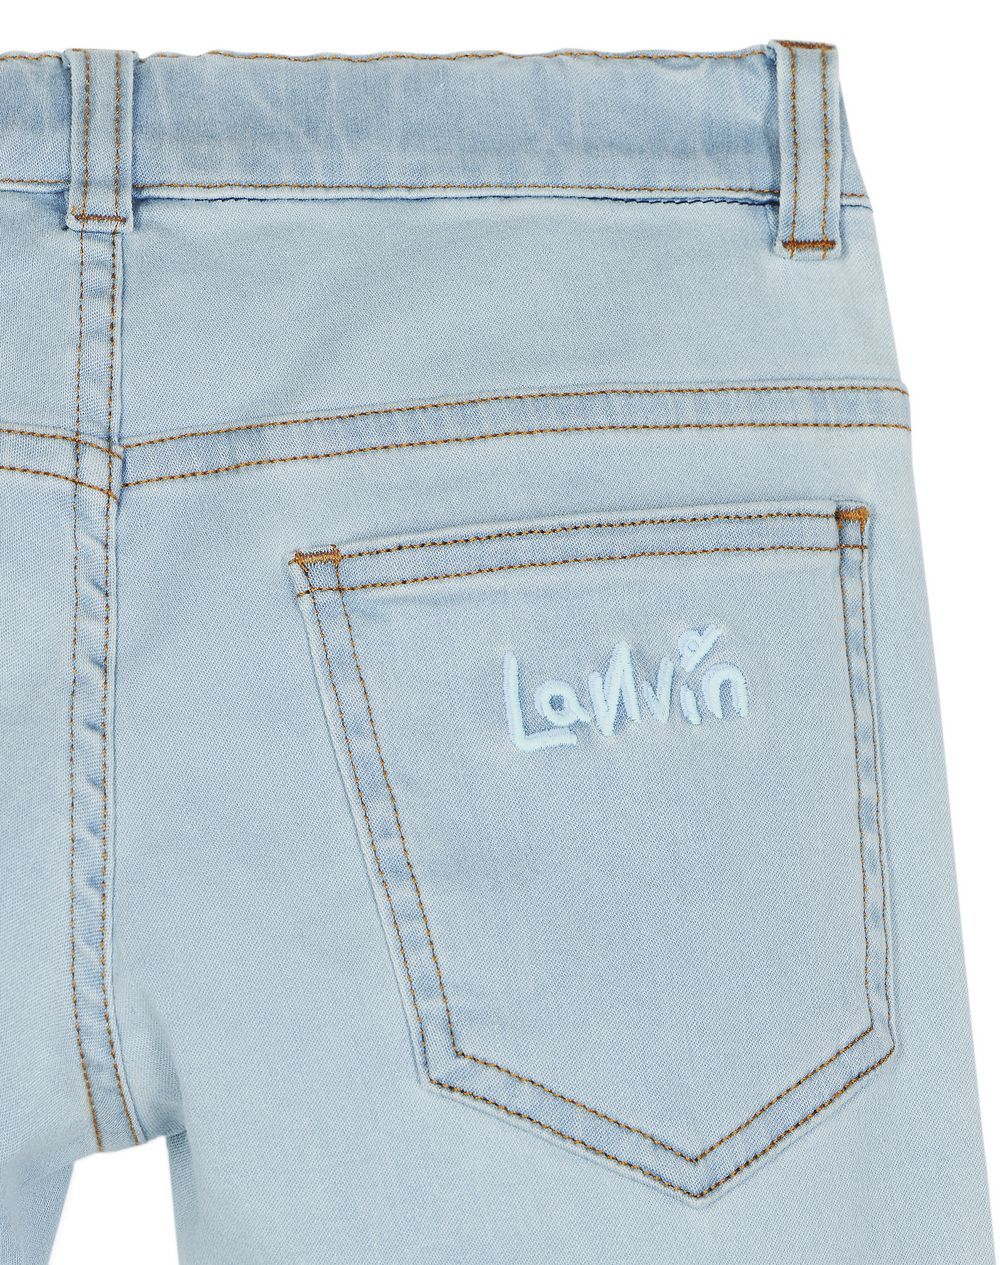 BLUE DENIM PANTS - Lanvin